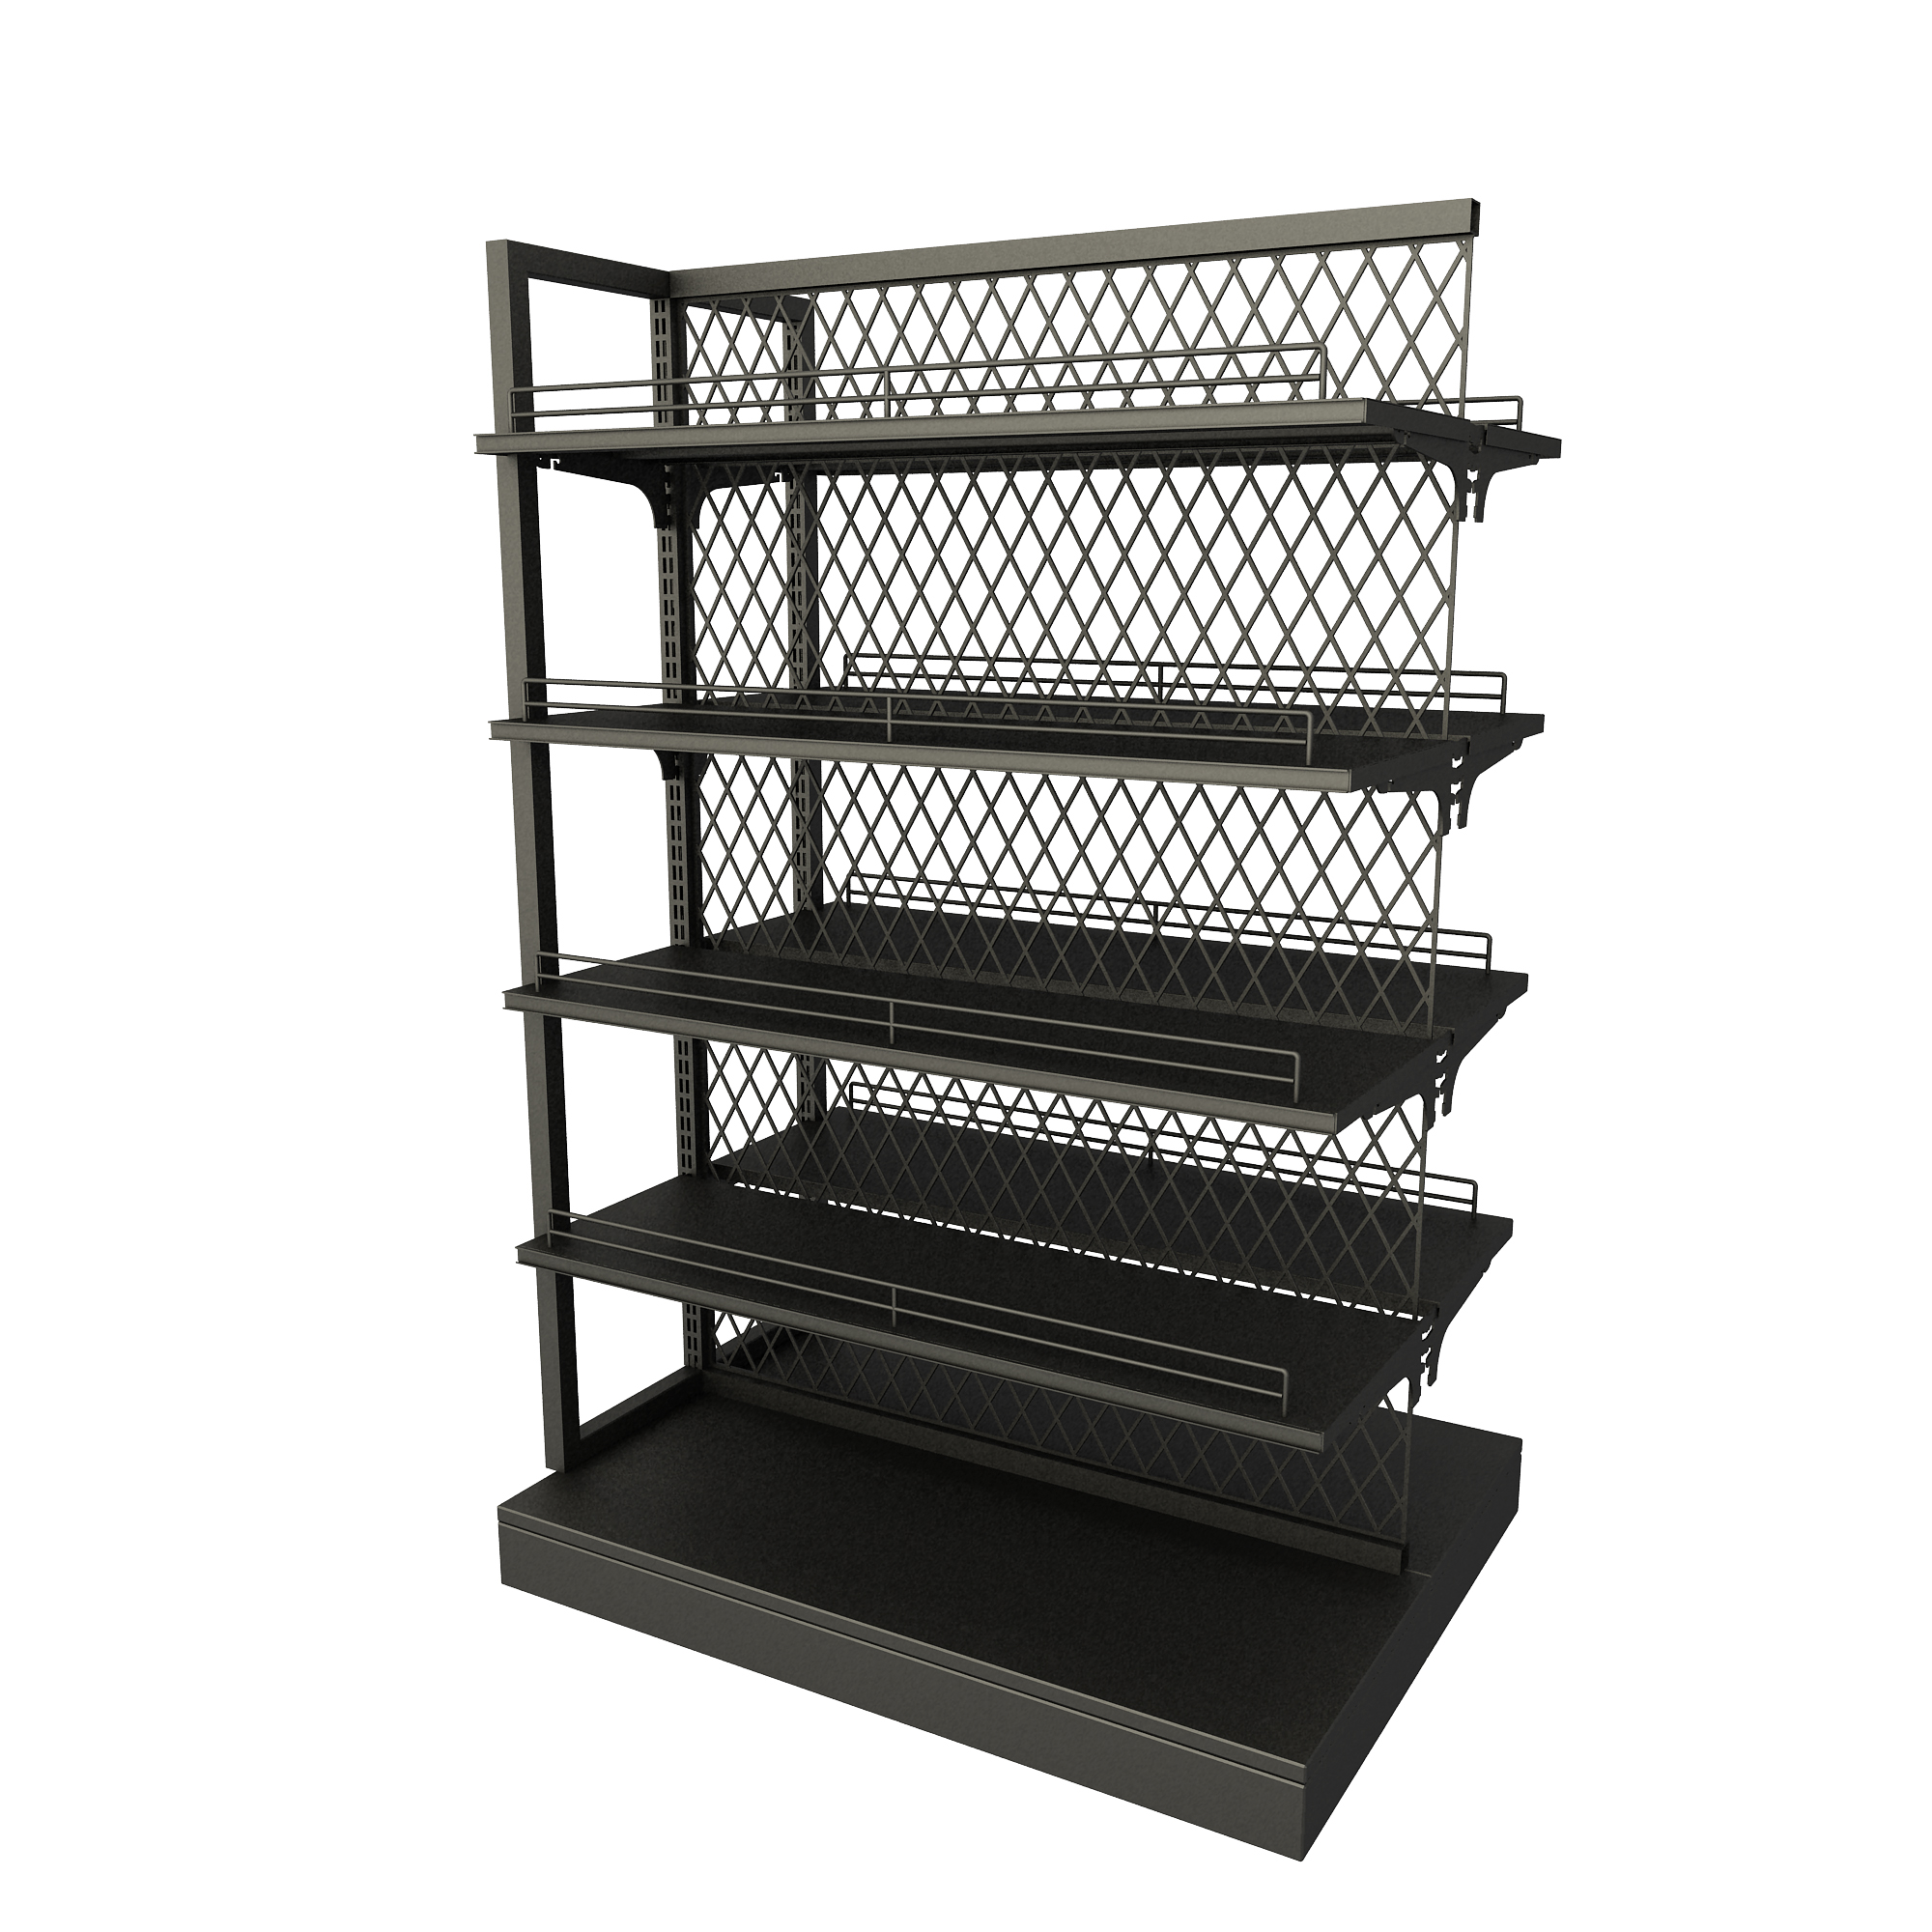 Boutique supermarket gondola display shelf